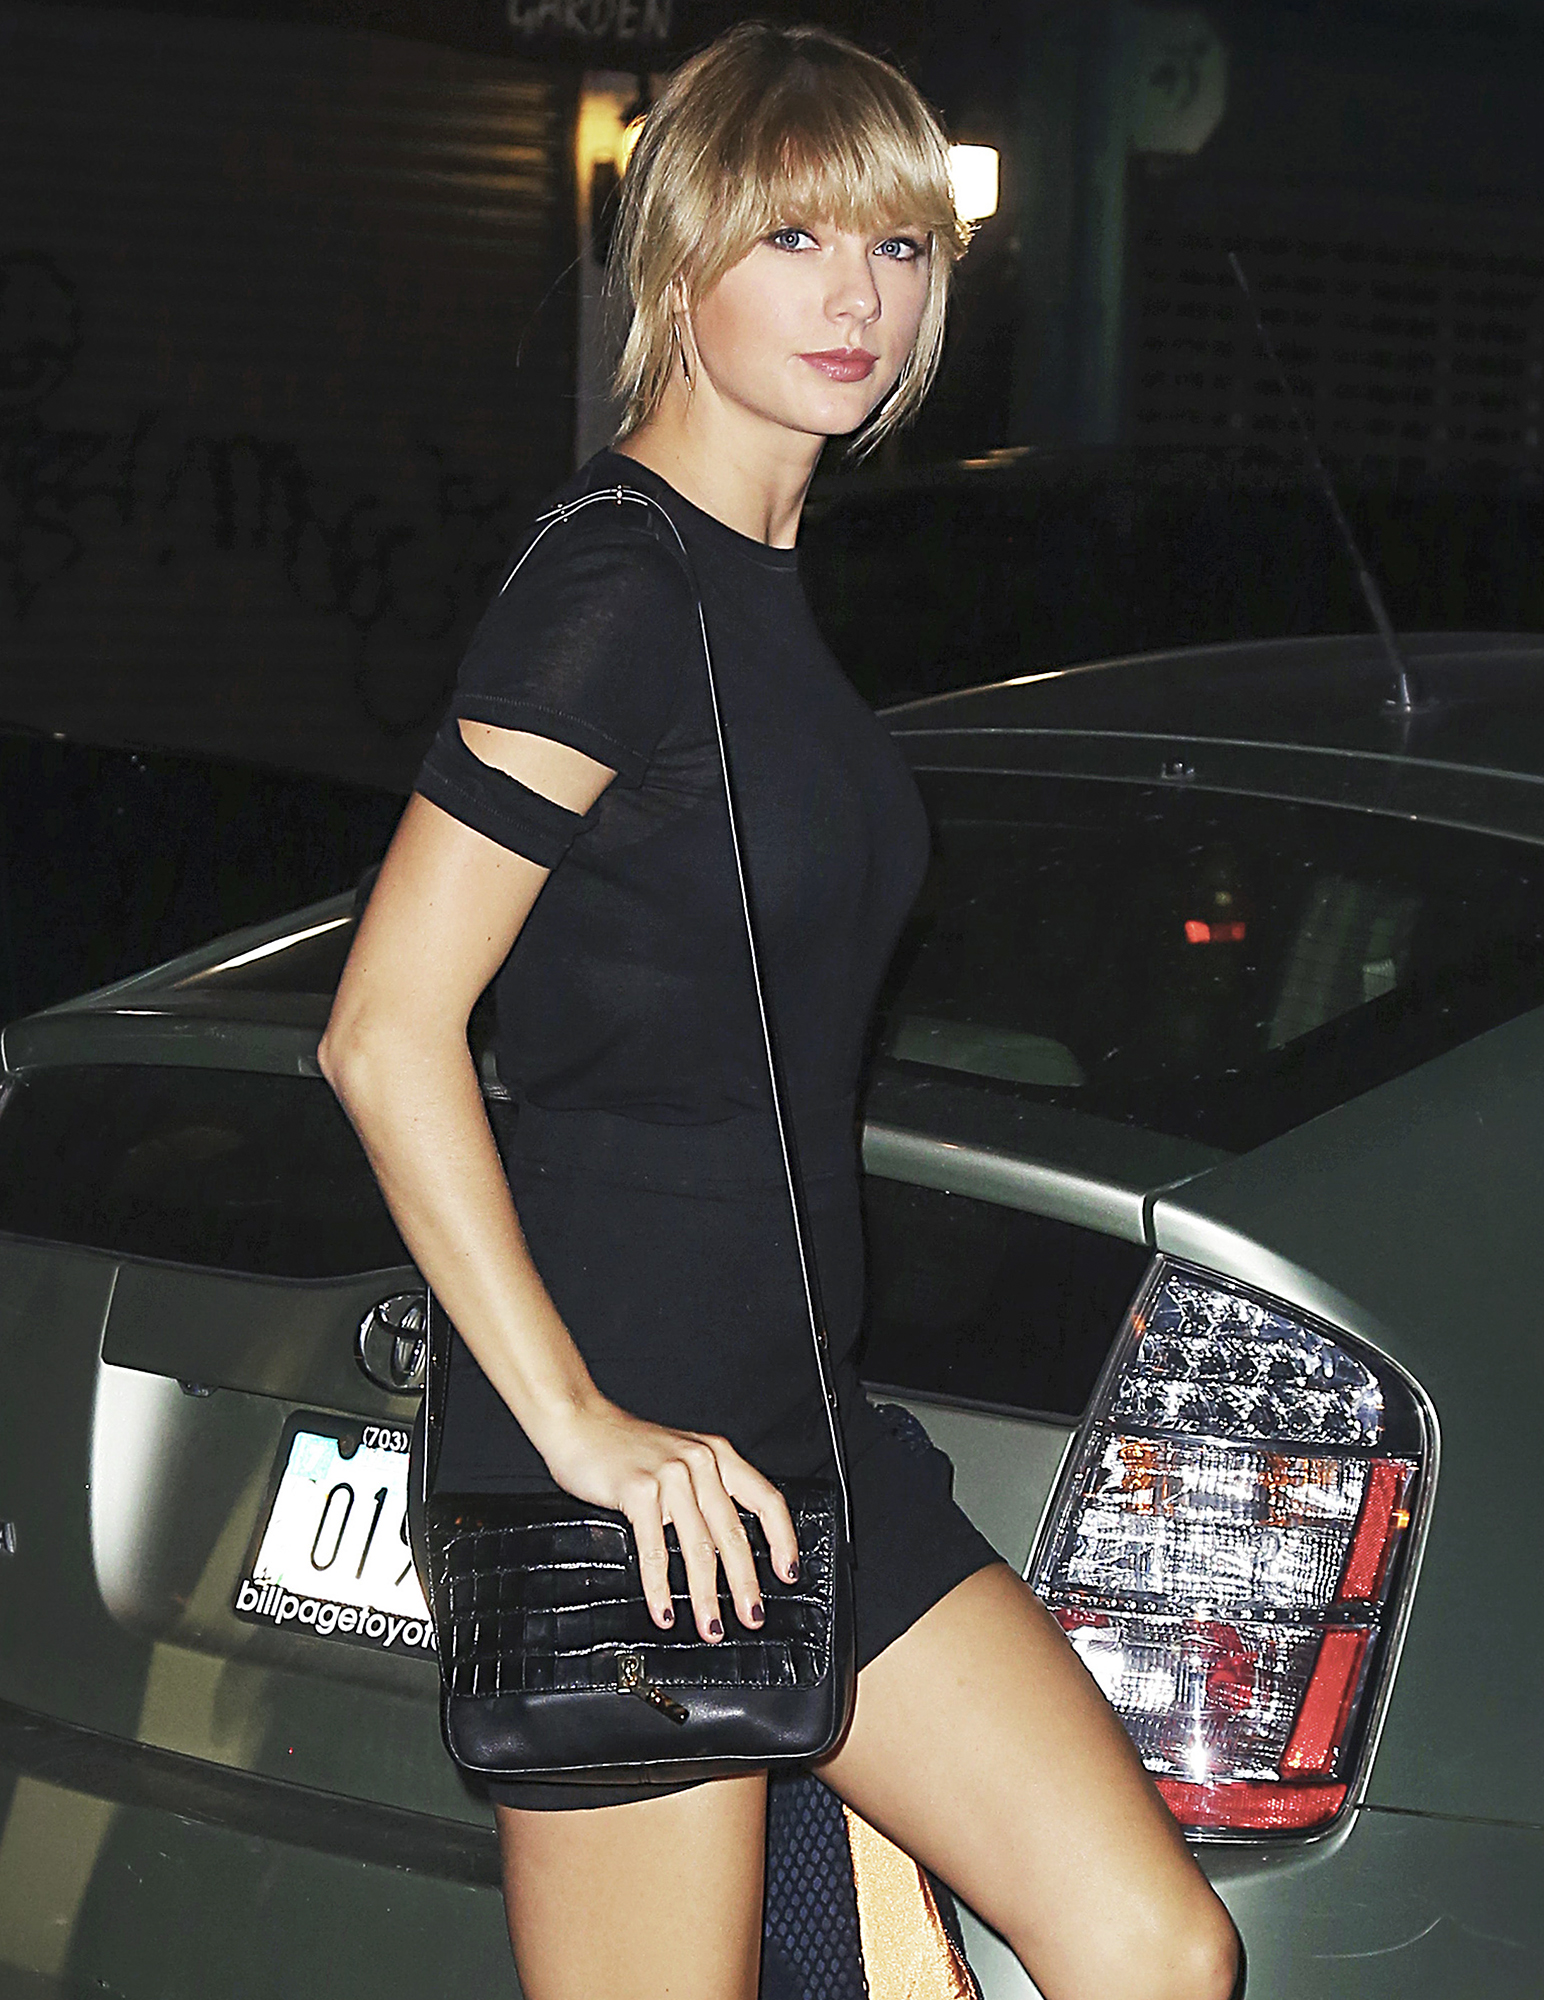 Taylor Swift steps out with friends Cara Delevinge, Lorde, Suki Waterhouse for a show in NYC